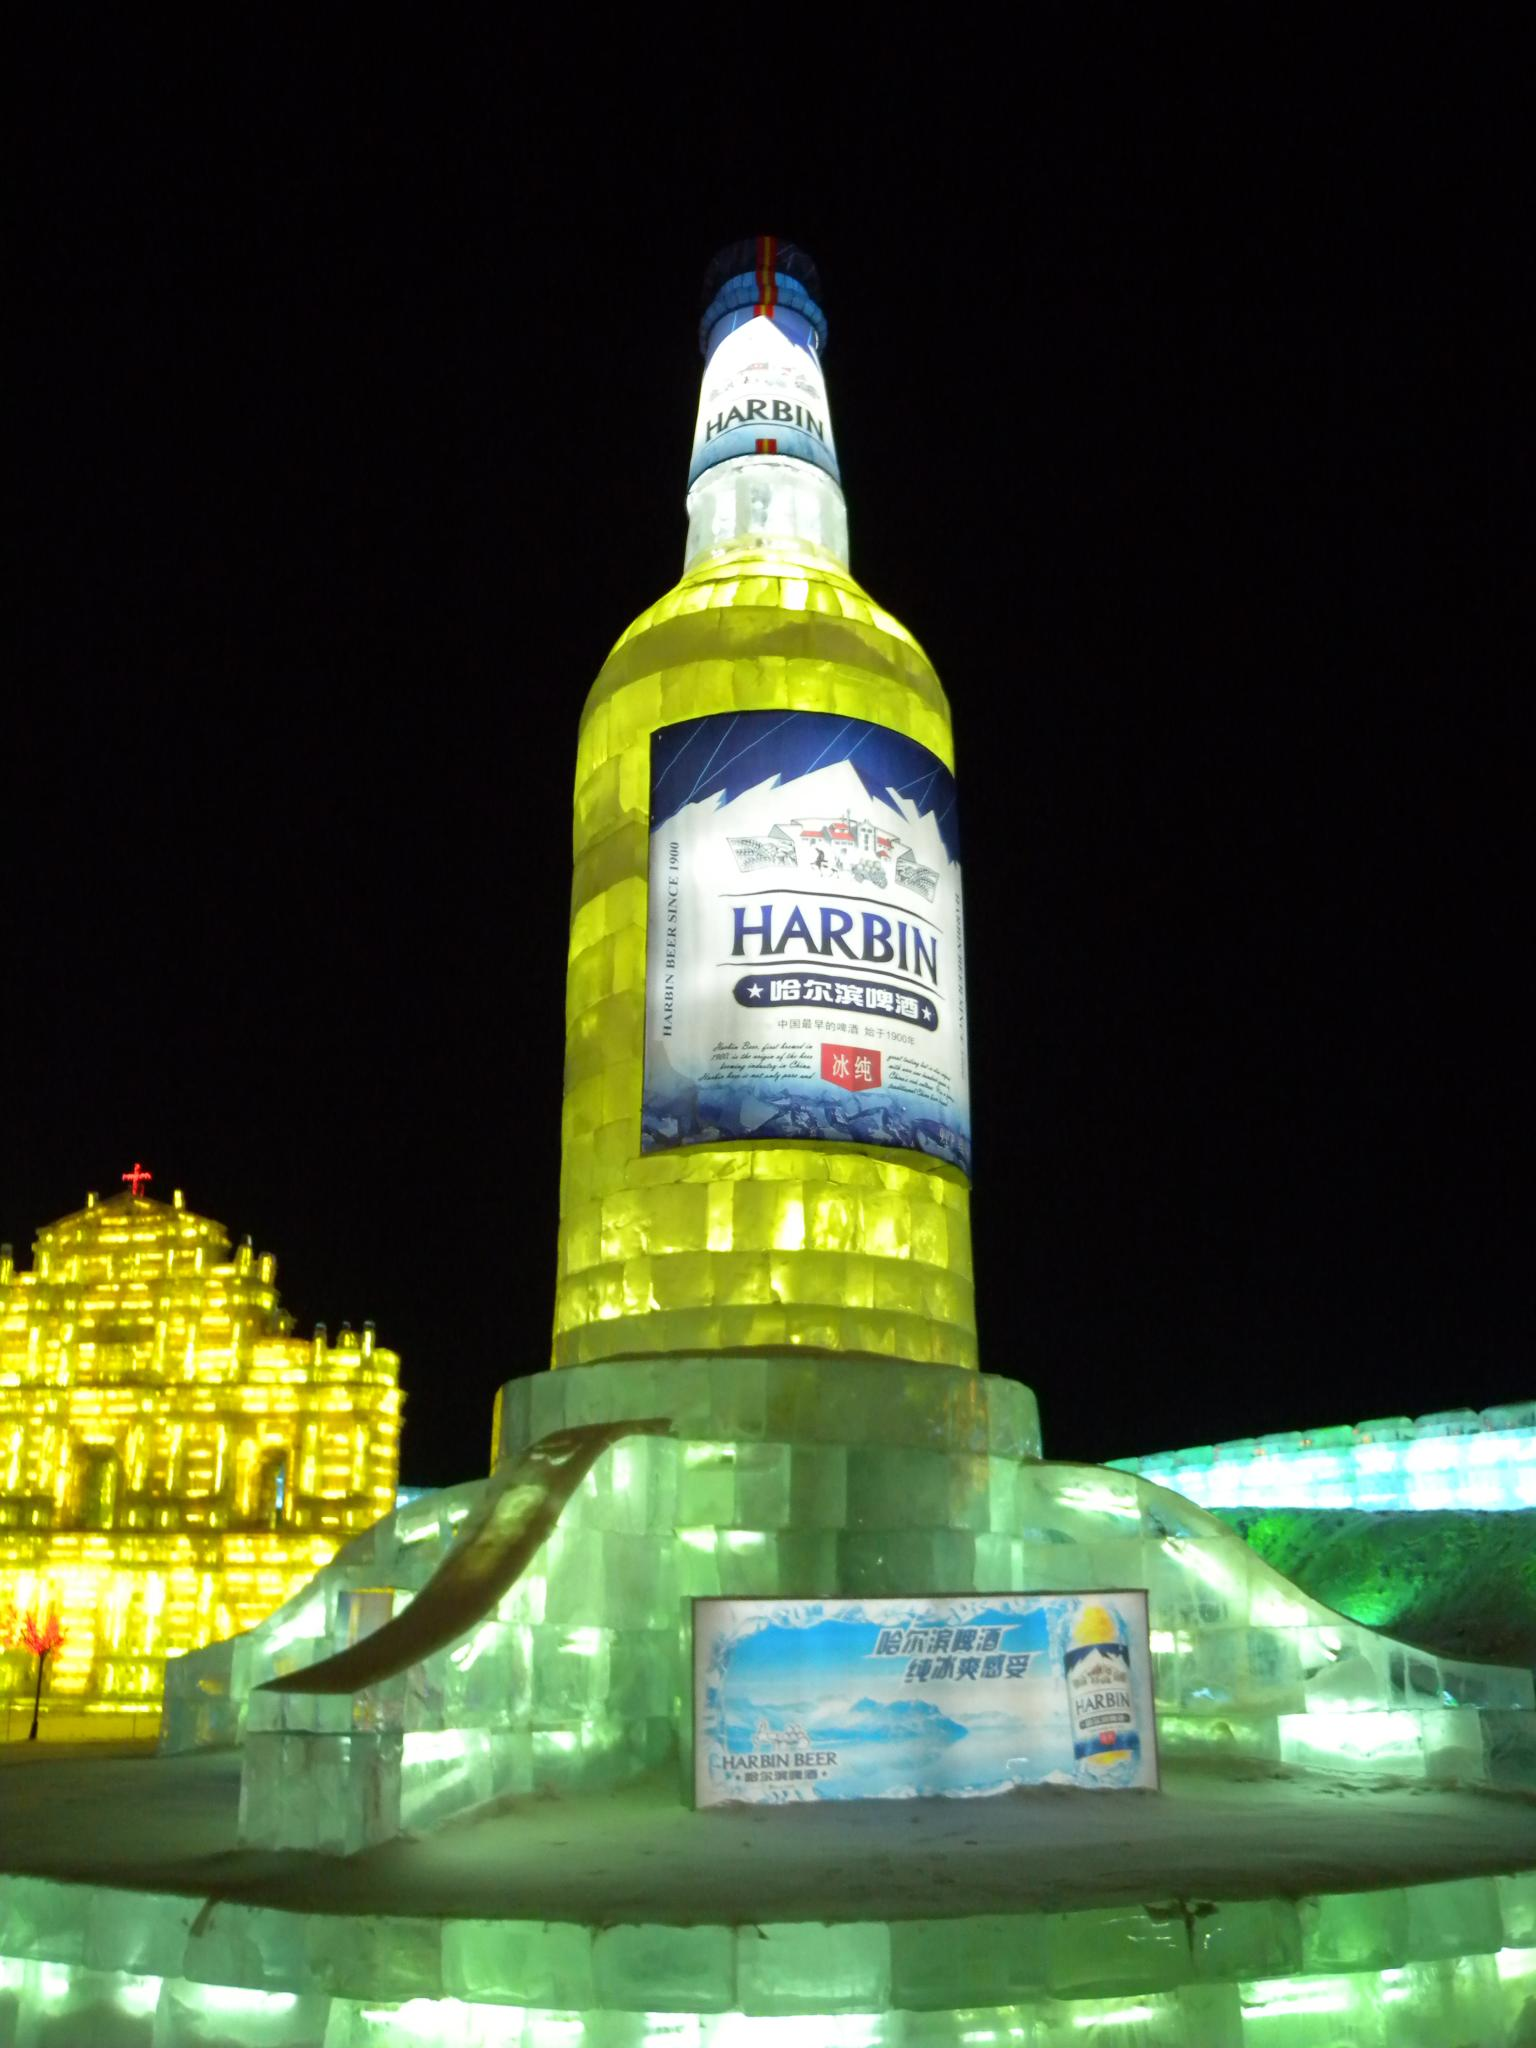 Harbin Beer Sculpture.jpg